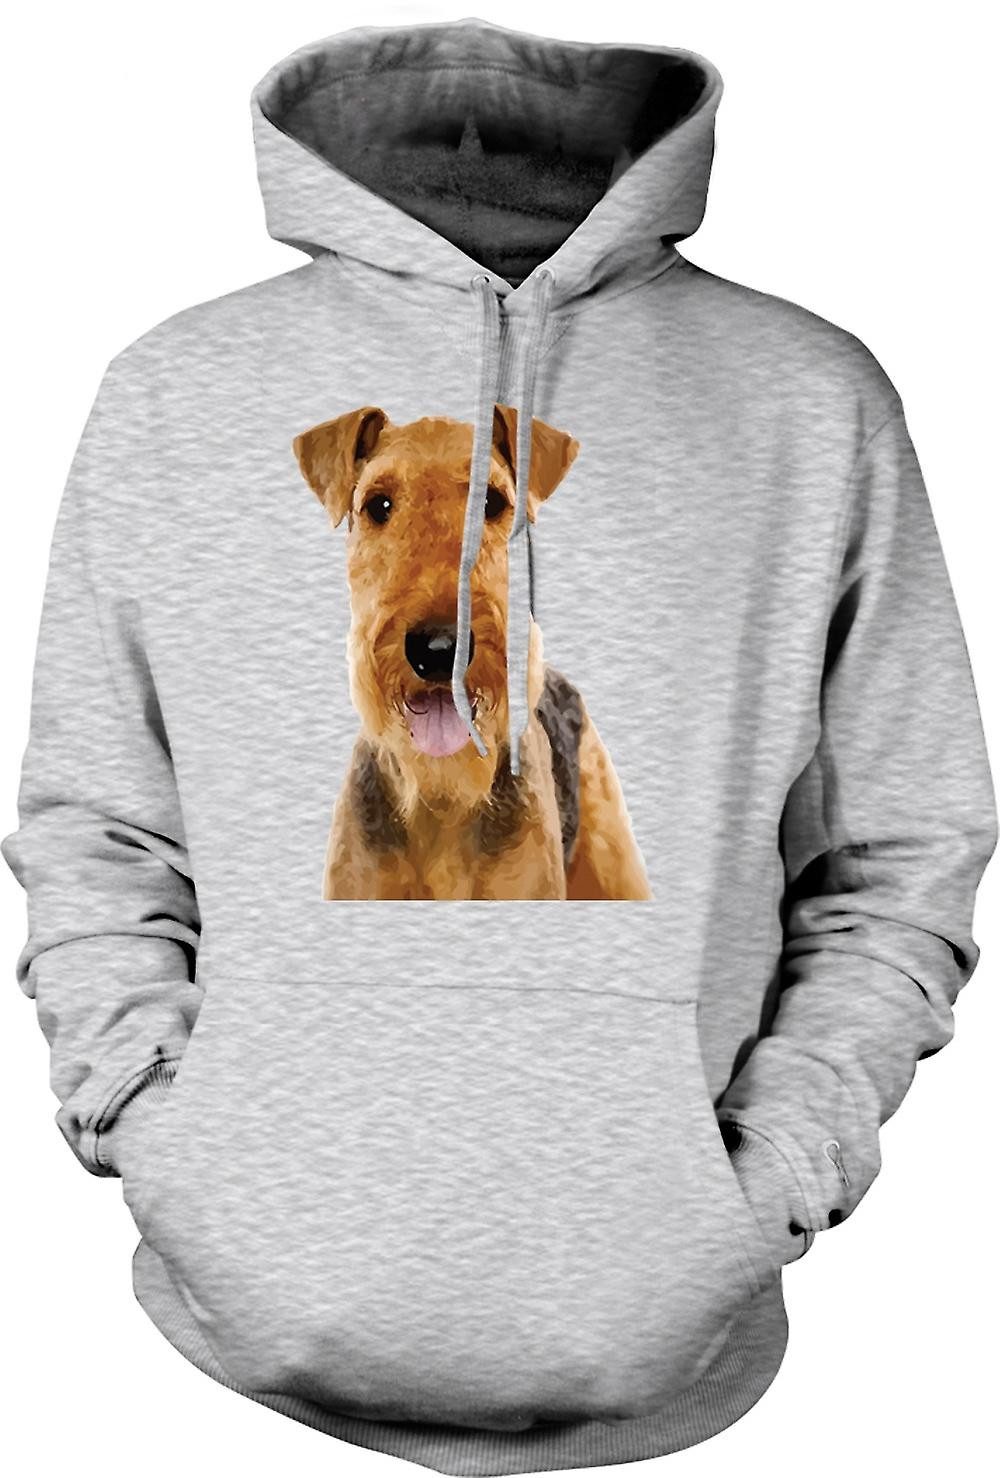 Mens Hoodie - Airdale Terrier Pet Dog